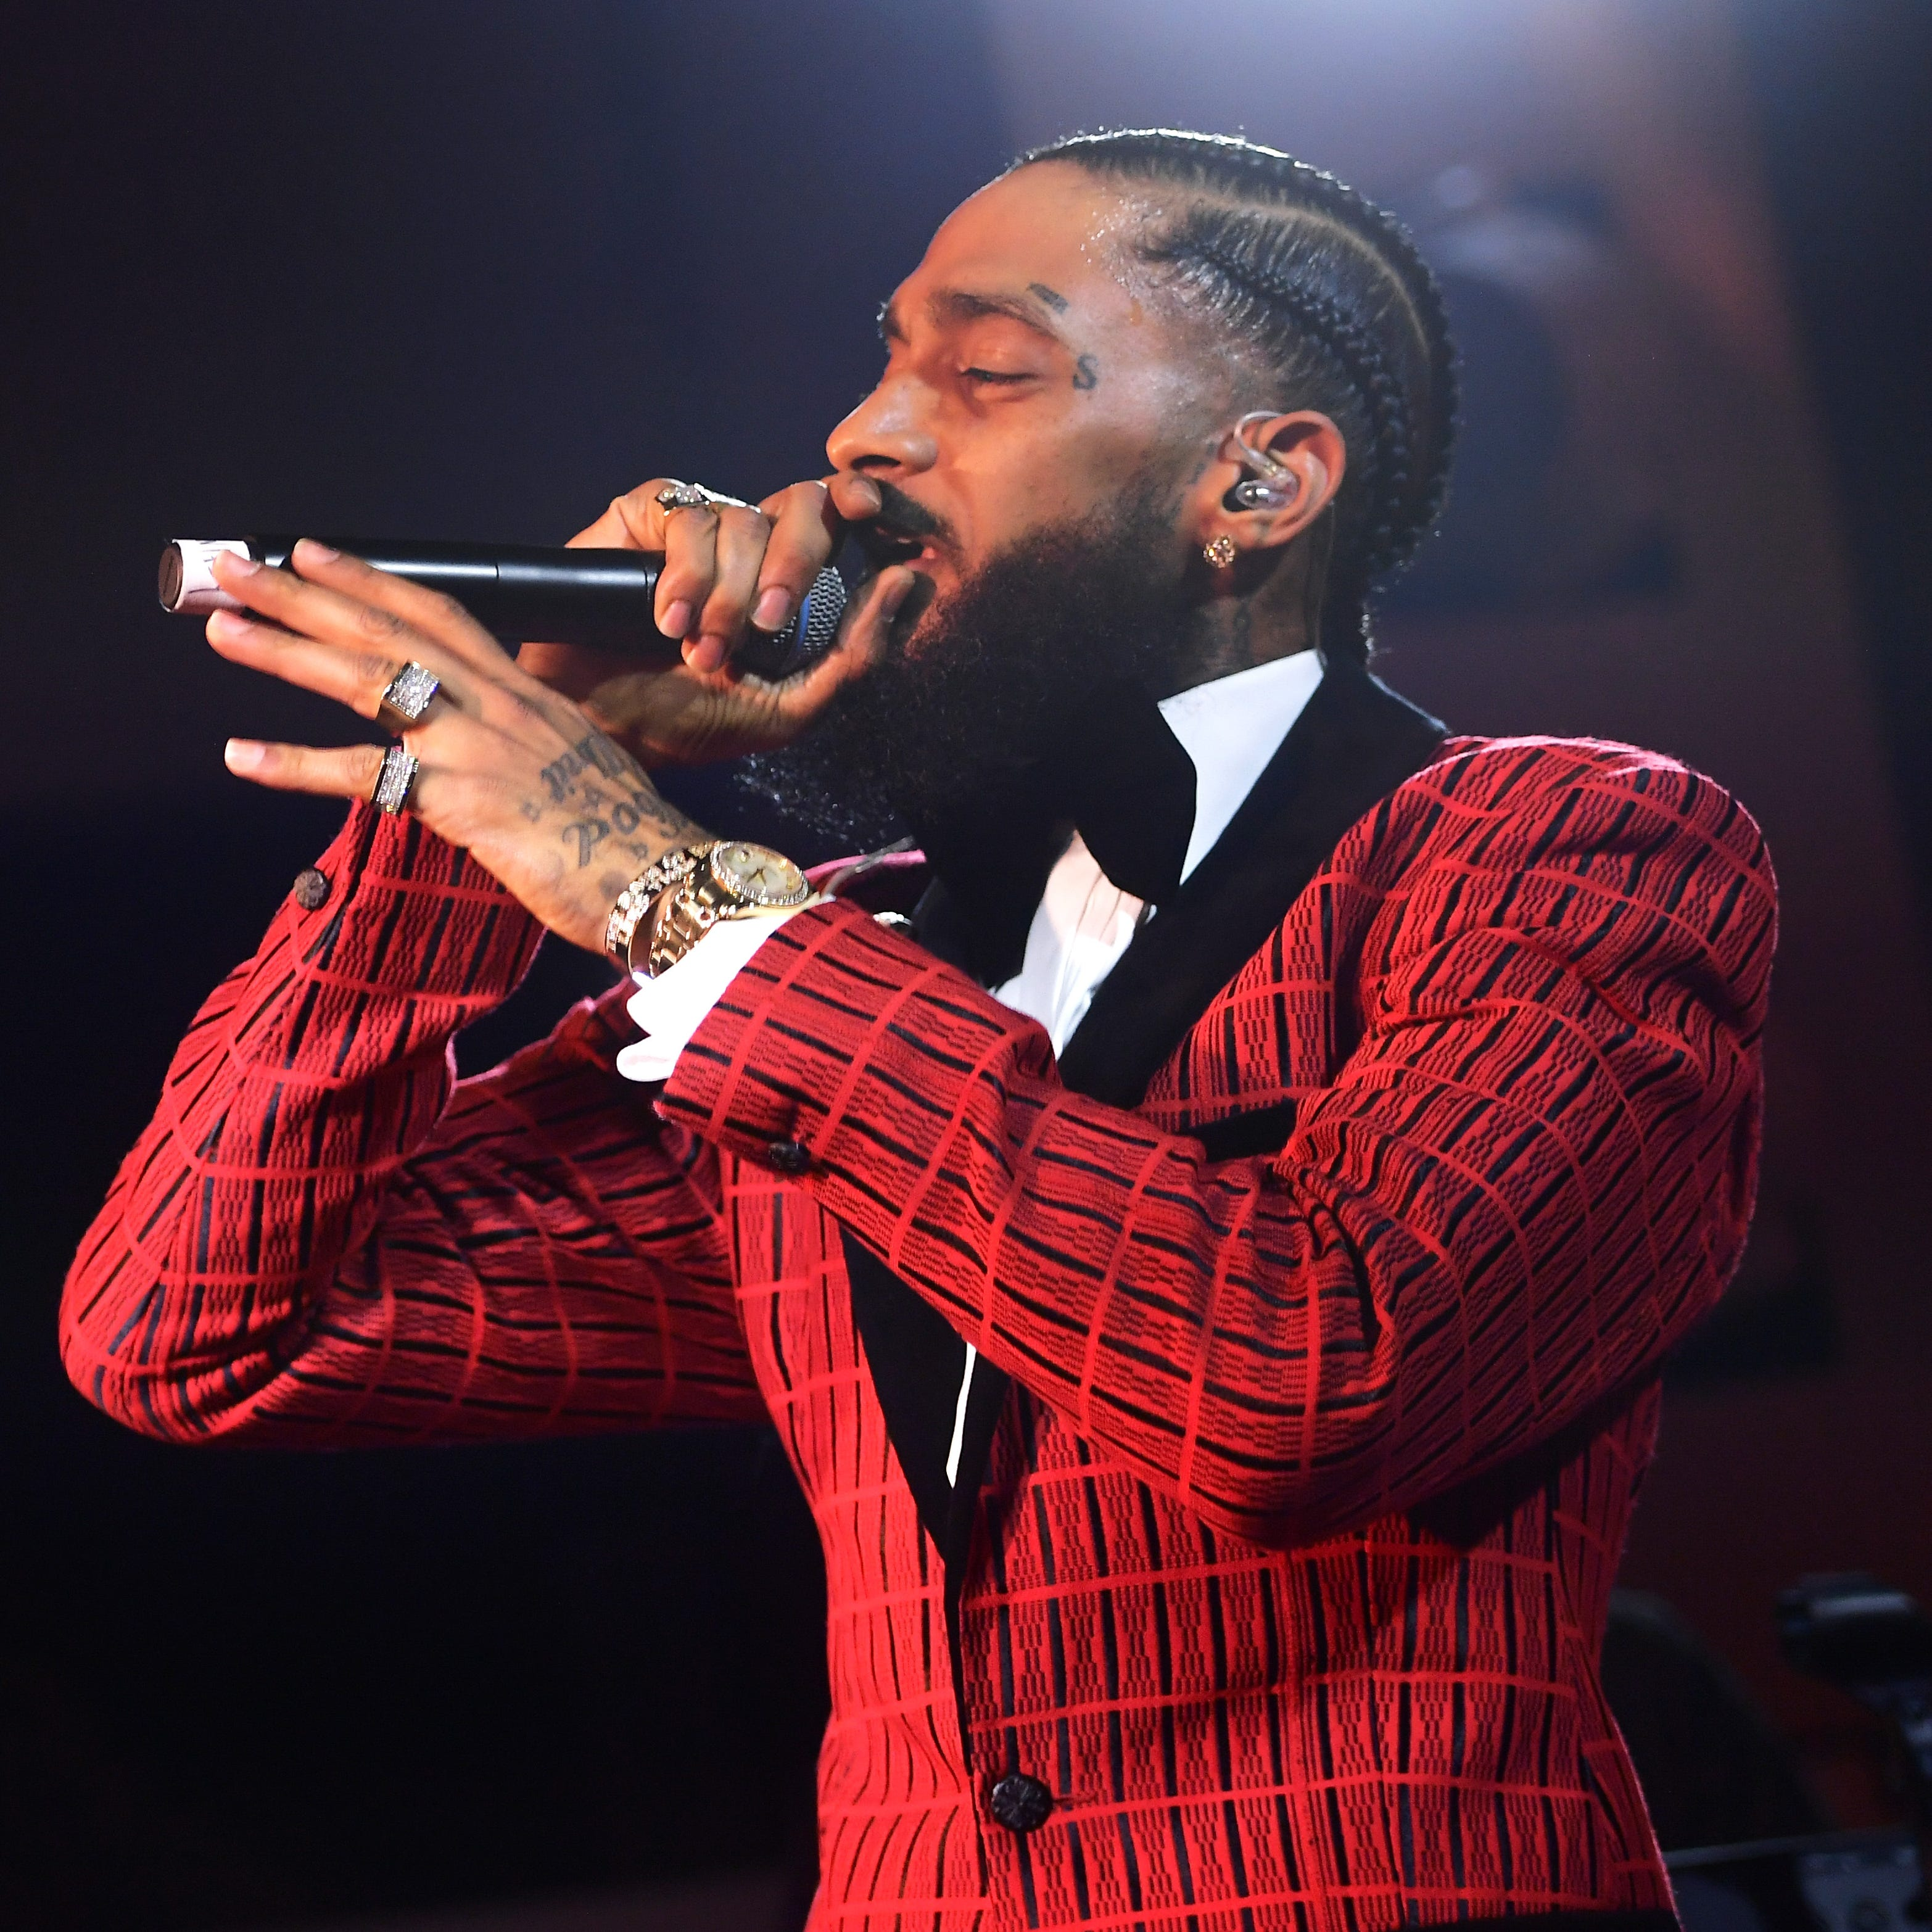 Slain rapper Nipsey Hussle spoke against gun violence in Arizona, planned LAPD summit on gang violence